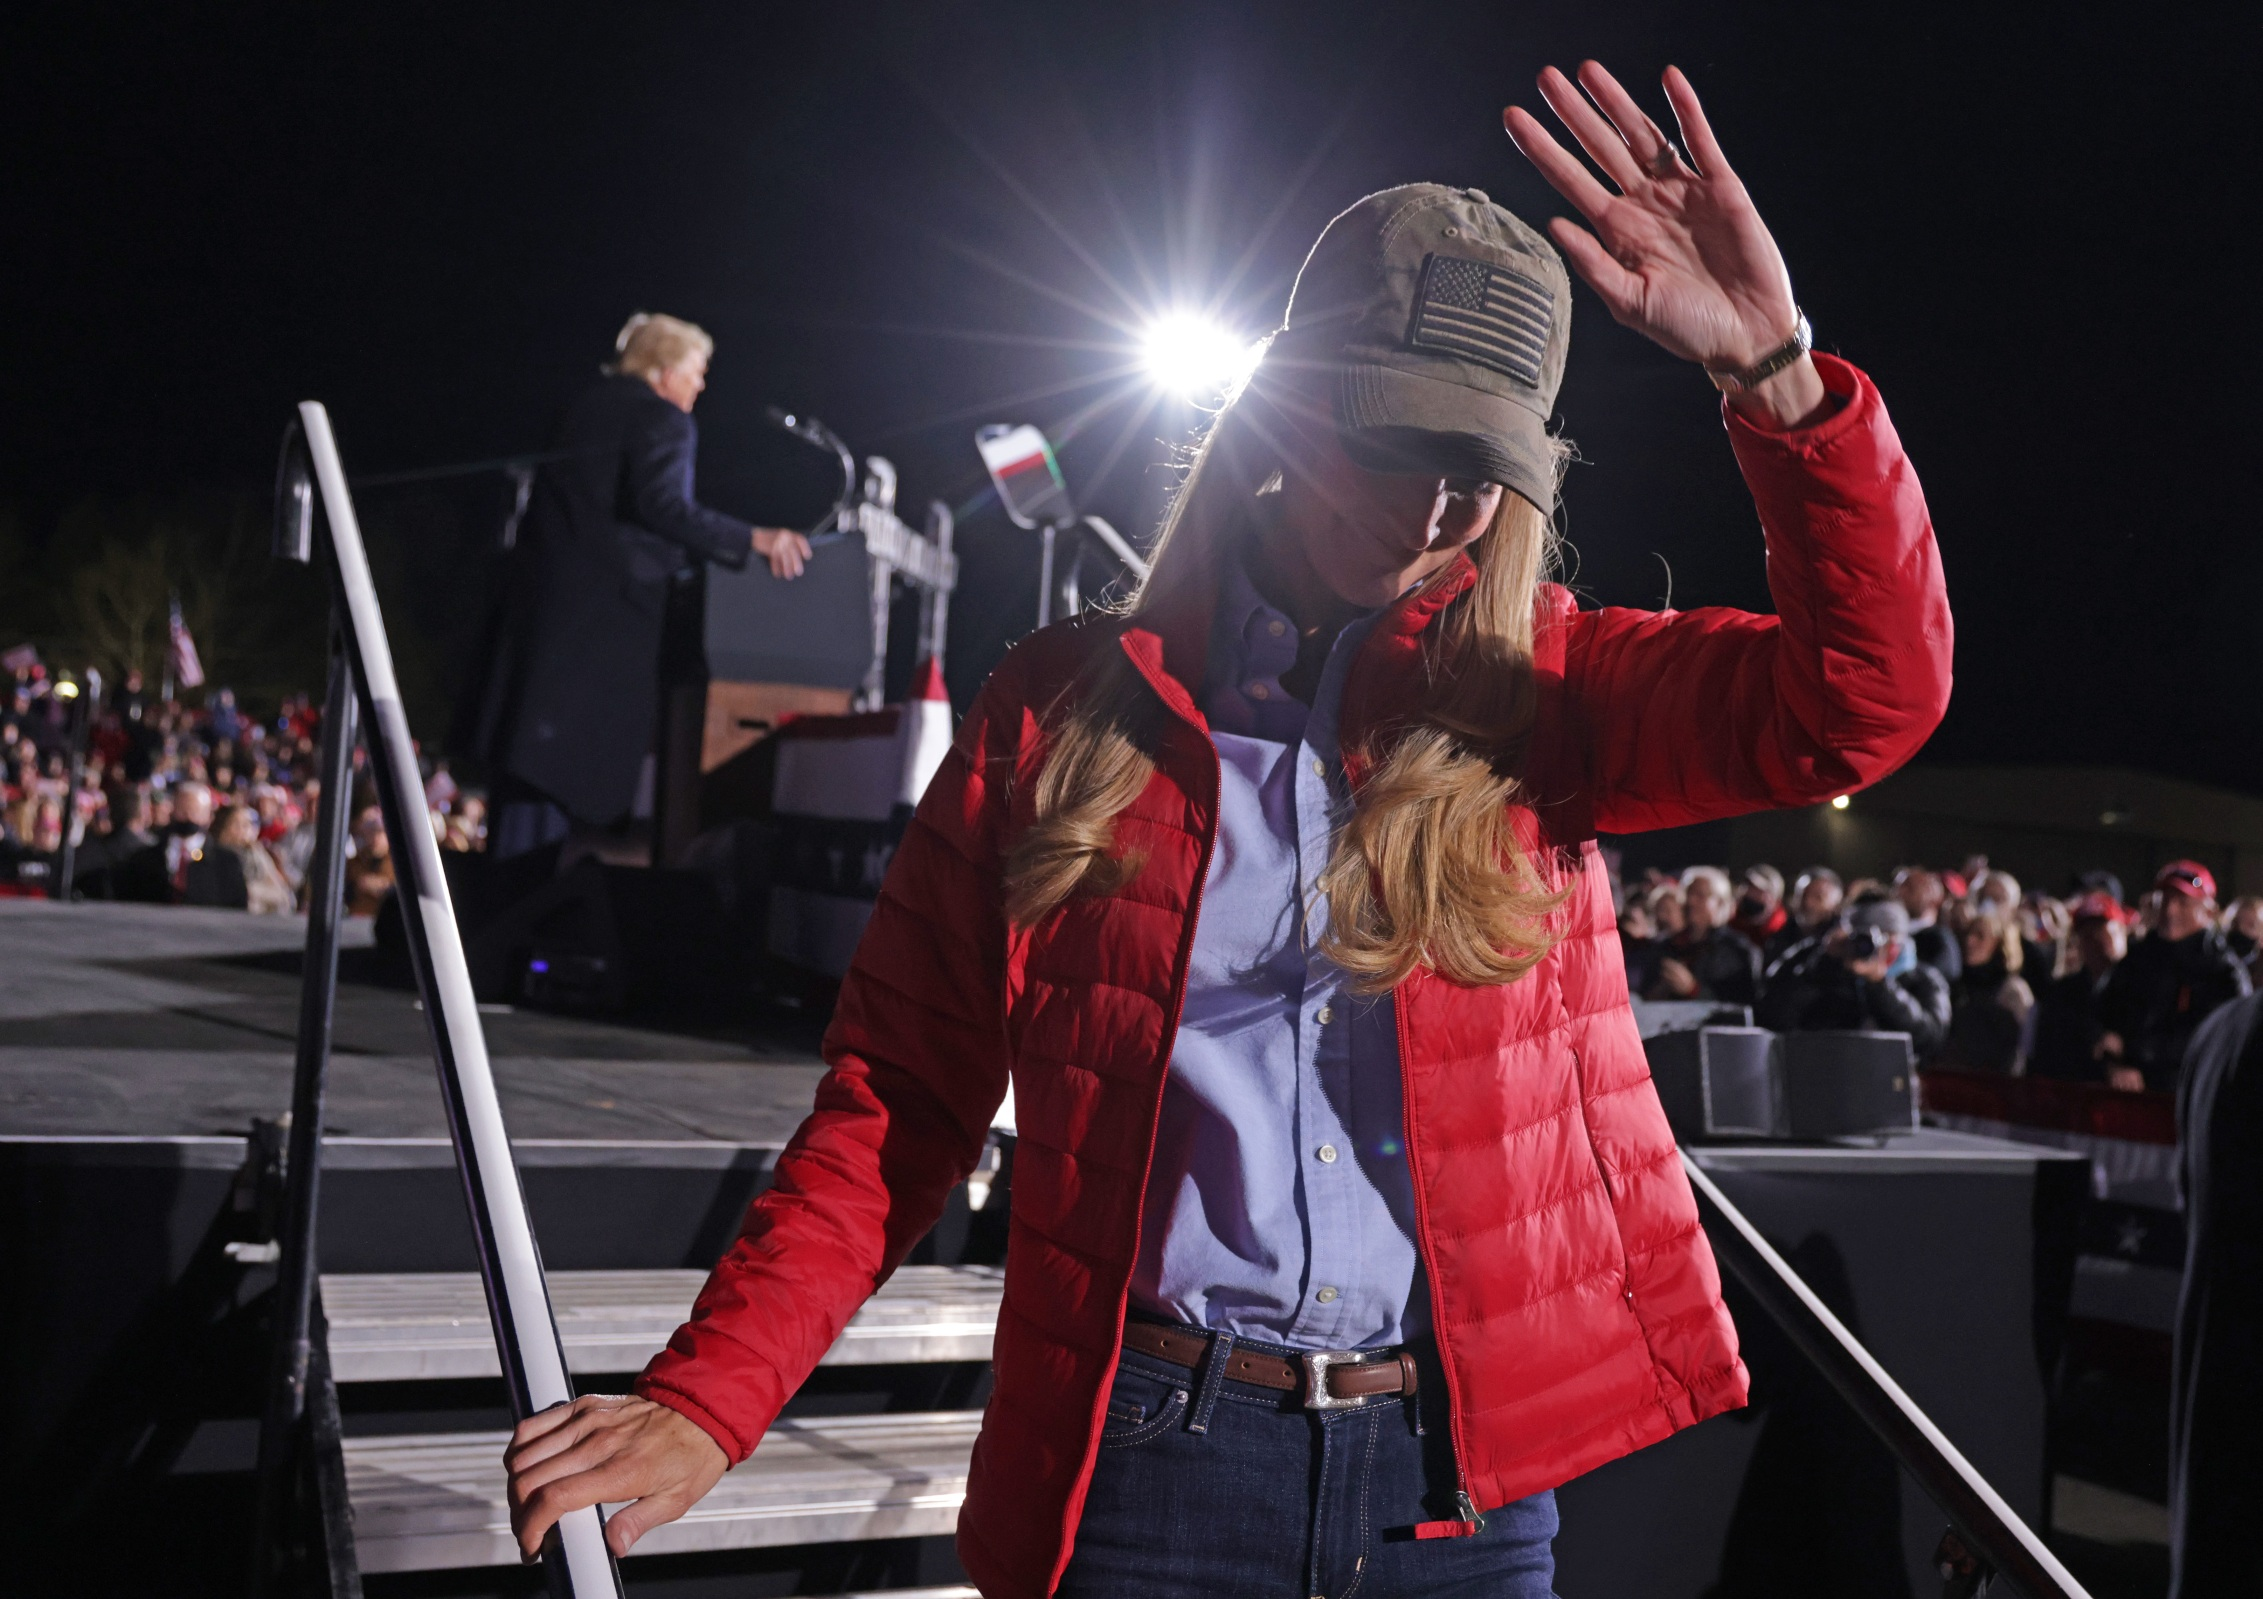 U.S. Sen. Kelly Loeffler (R-GA) steps off the stage after she spoke during a Republican National Committee Victory Rally at Dalton Regional Airport January 4, 2021 in Dalton, Georgia. President Trump campaigned for the two incumbents, Sen. David Perdue (R-GA) and Sen. Kelly Loeffler (R-GA), for runoff elections in Georgia.